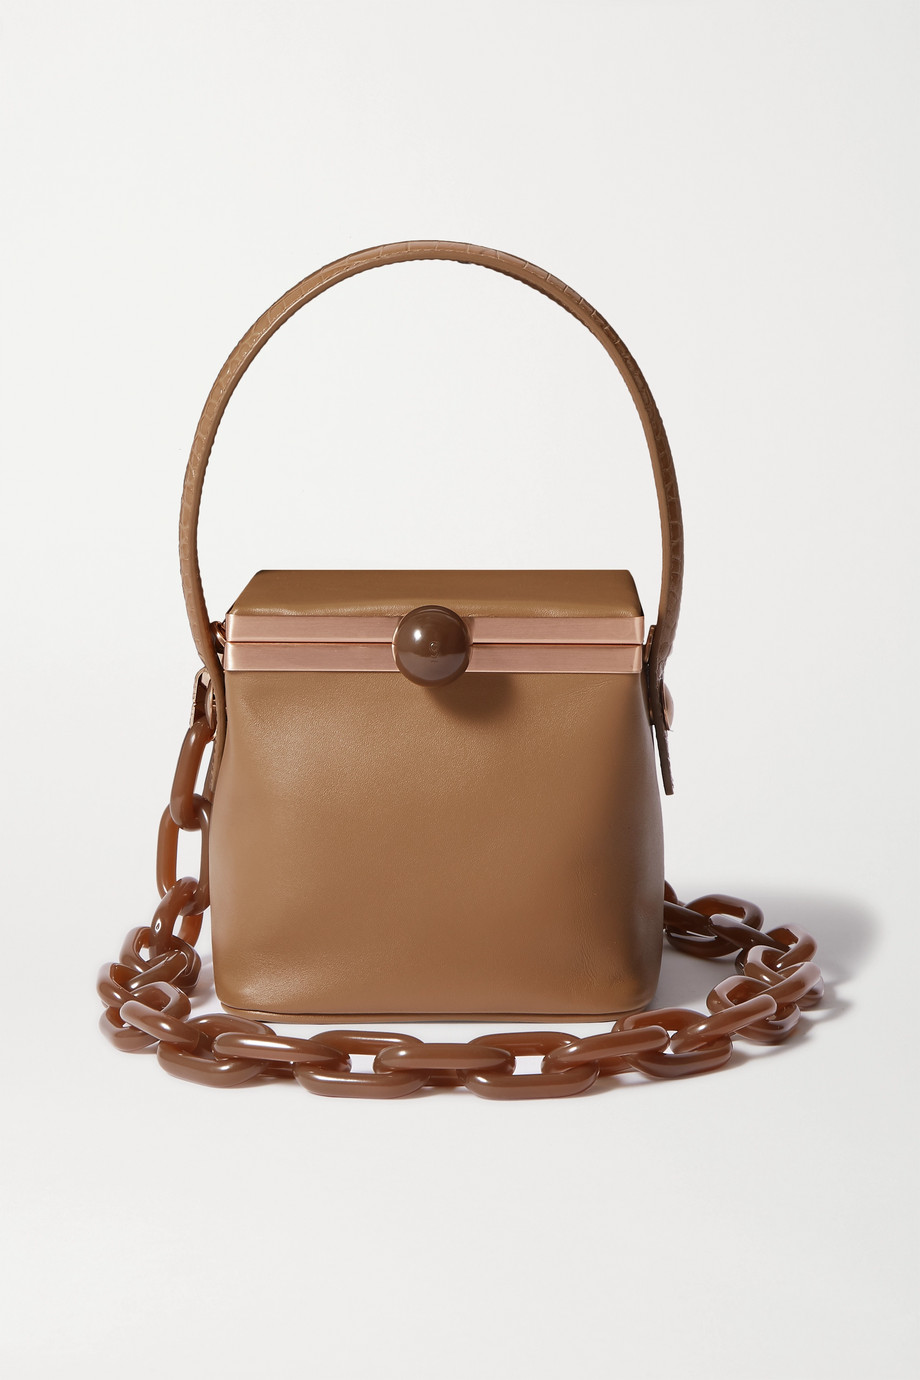 Gu_de Dona leather shoulder bag